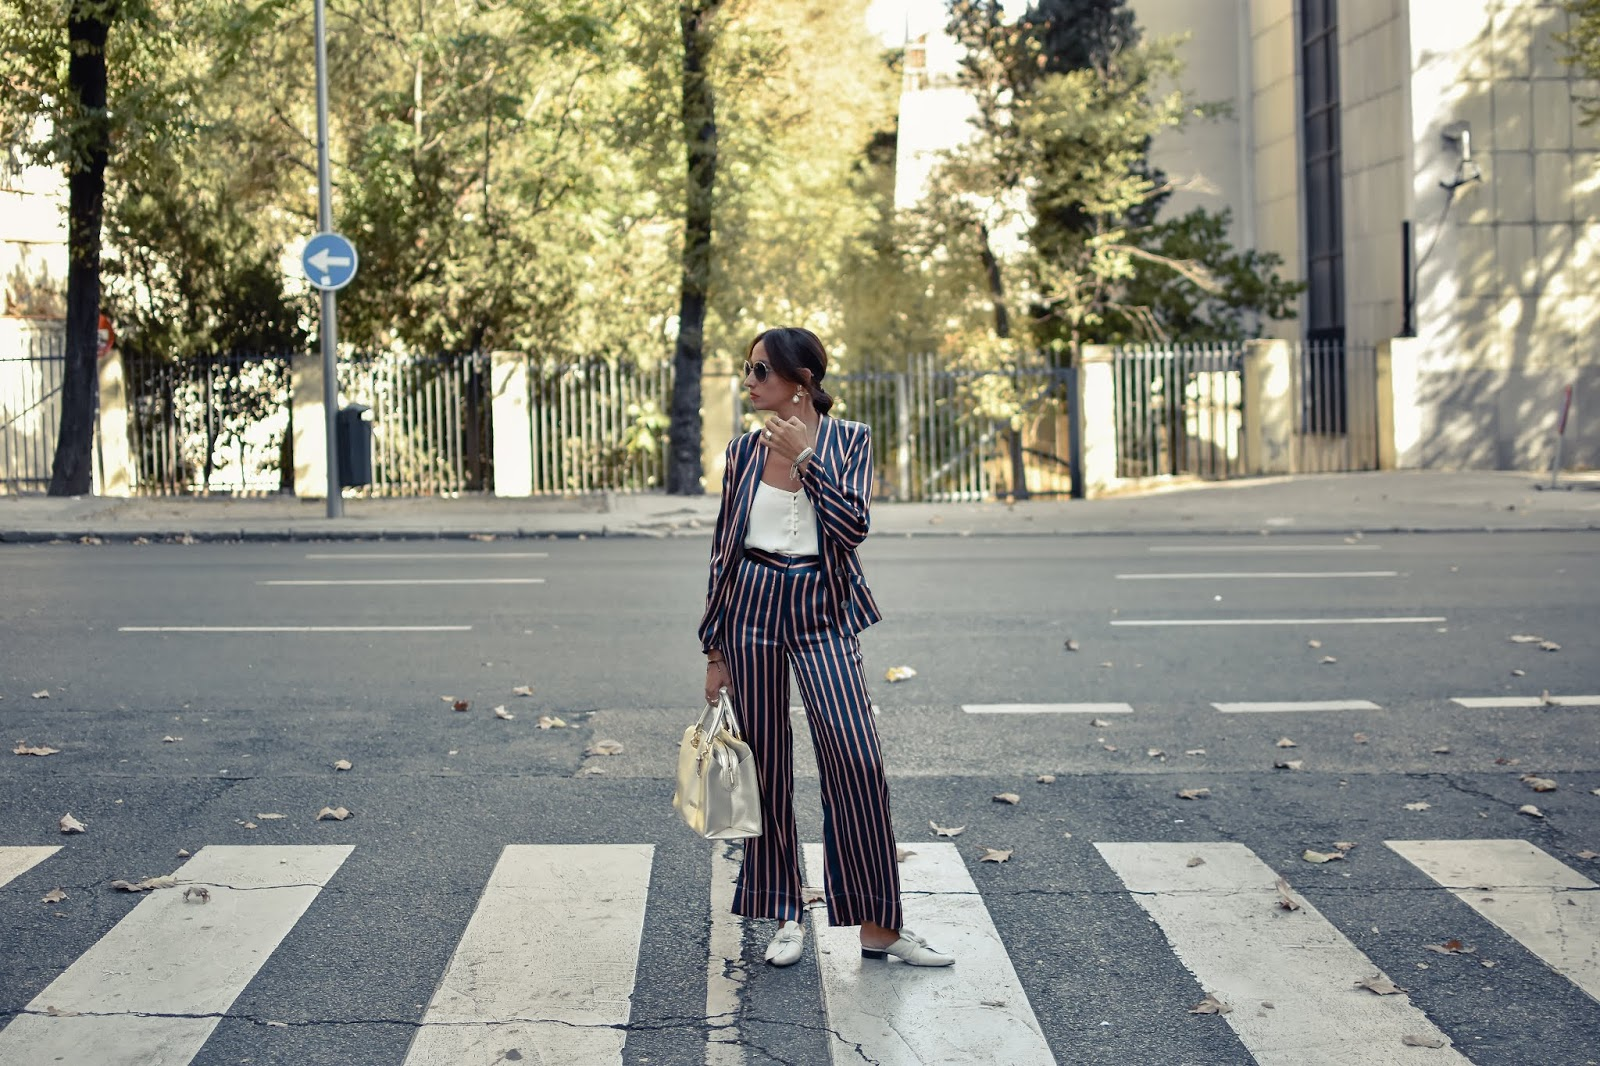 el-blog-de-silvia-rodriguez-street-style-madrid-total-look-richroyal-pijama-style-blogger-influencer